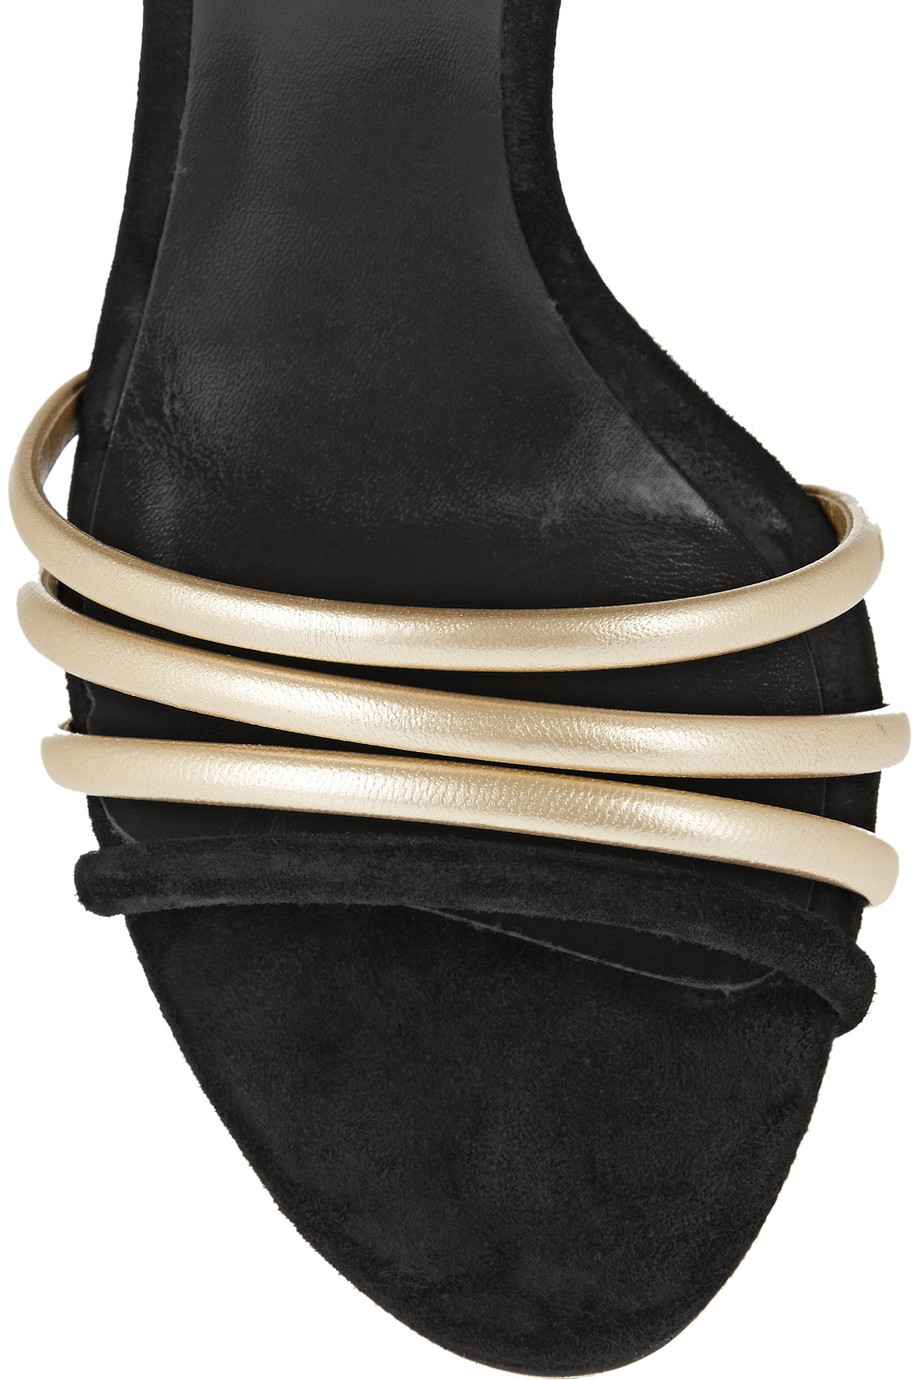 Casadei Suede and metallic leather sandals – 60% at THE OUTNET.COM